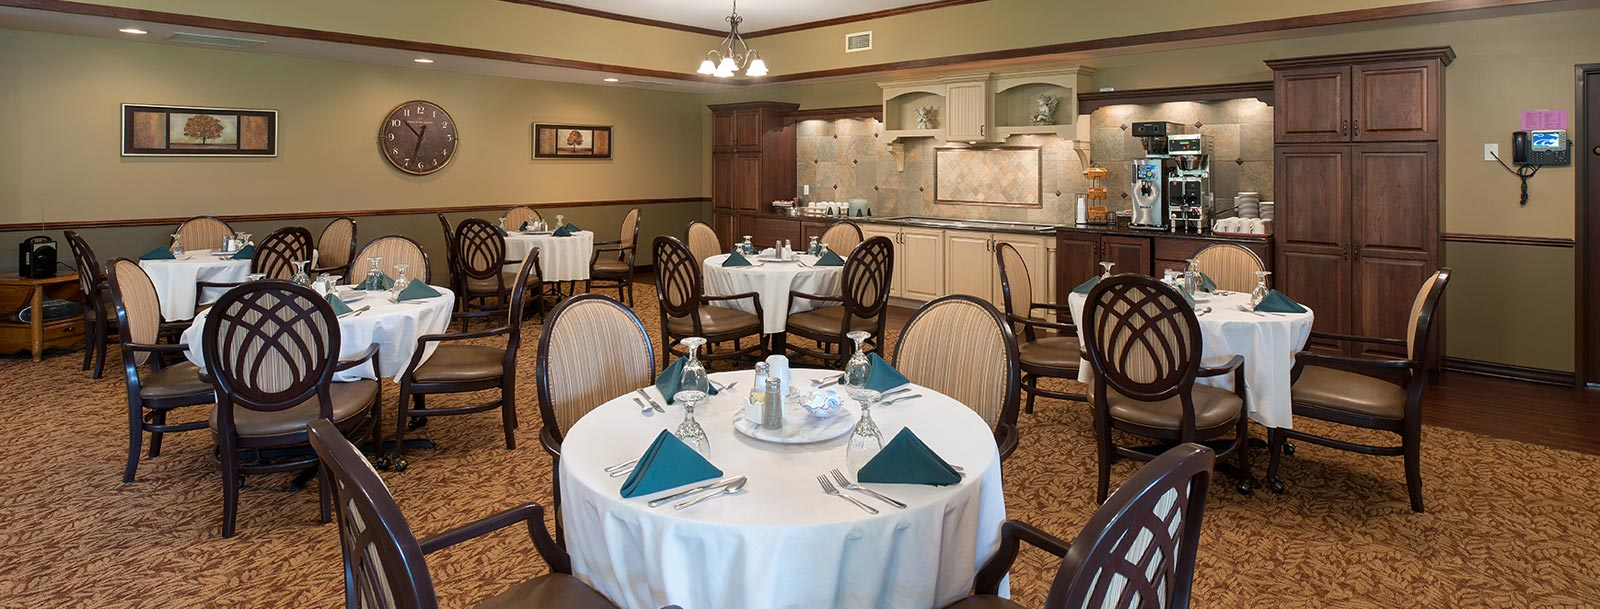 Professional chefs to prepare your meals at the senior living facility in Dodge City